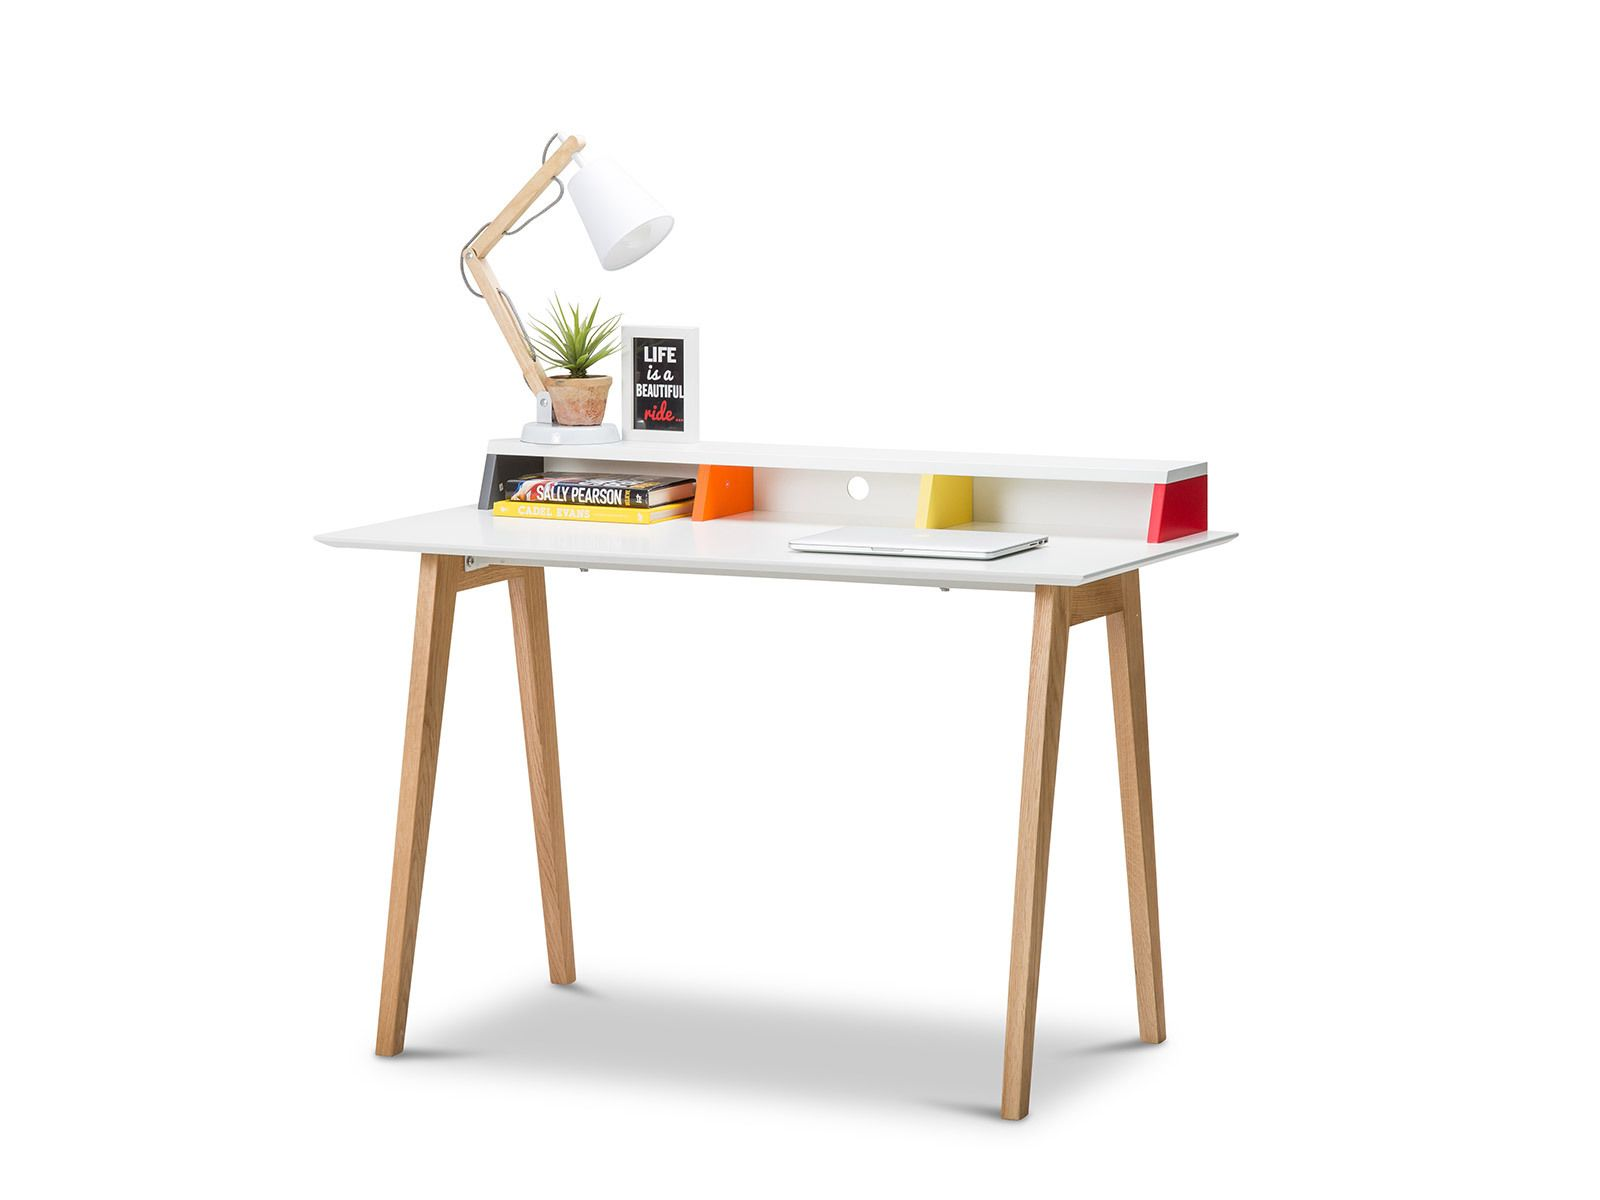 Scandinavian Style Desk aud 339 -- nila scandinavian style multi colour desk | retrojan